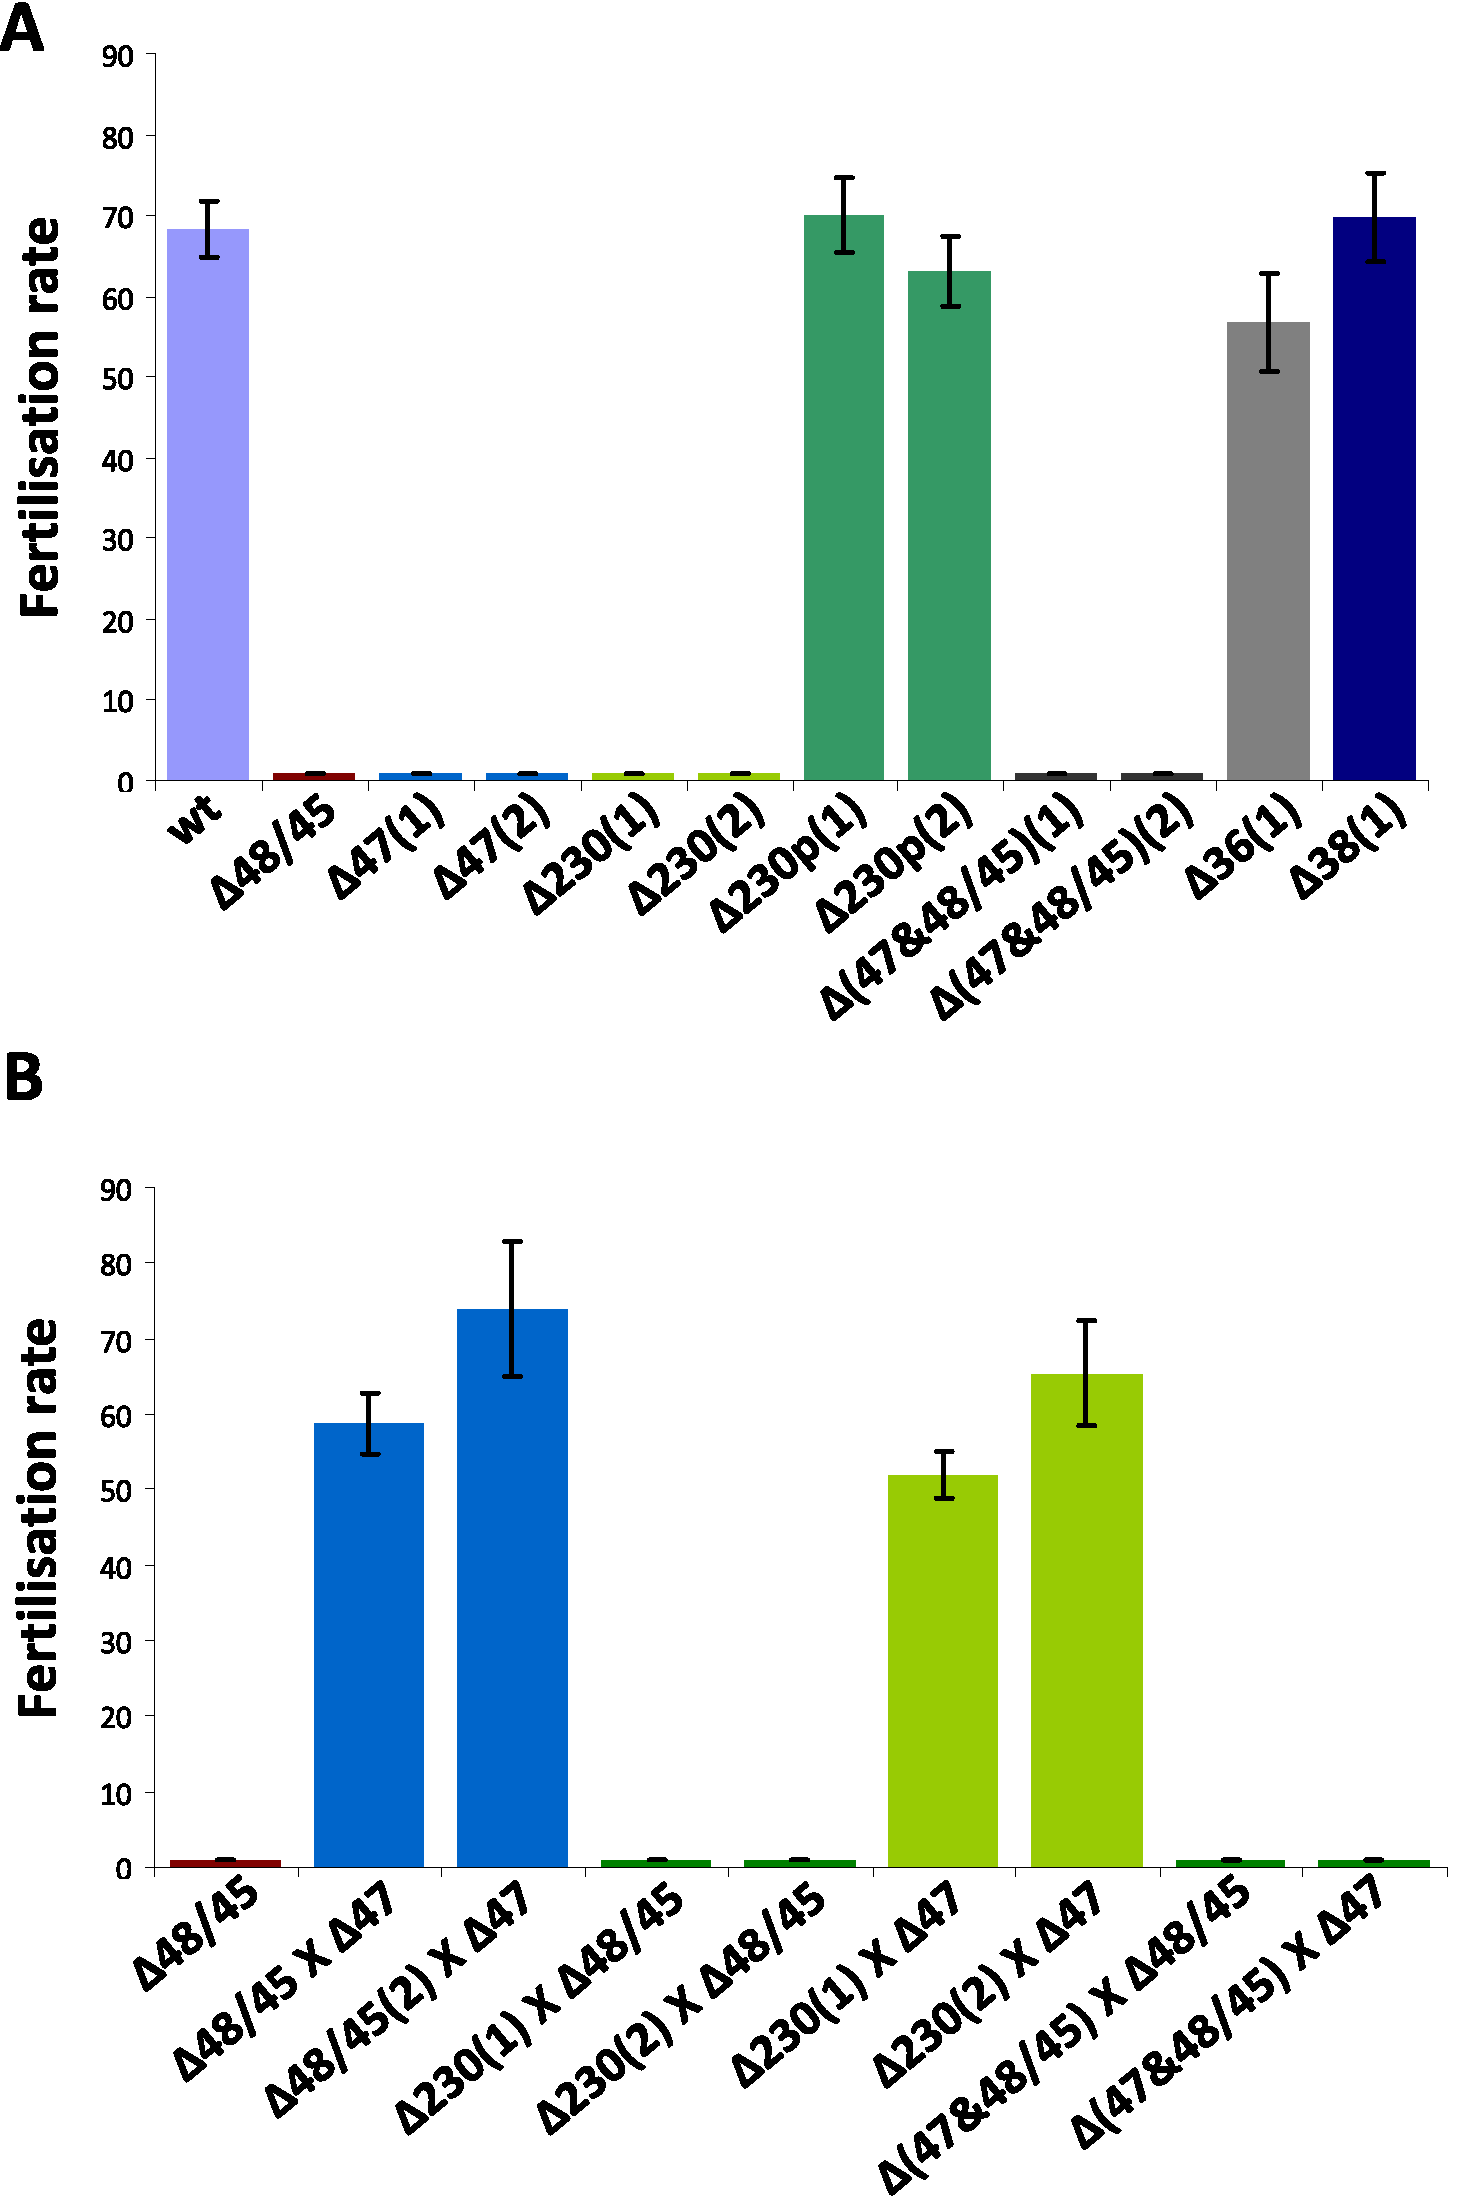 Fertilisation rates and male and female fertility of mutants lacking expression of different members of the 6-cys family of proteins.